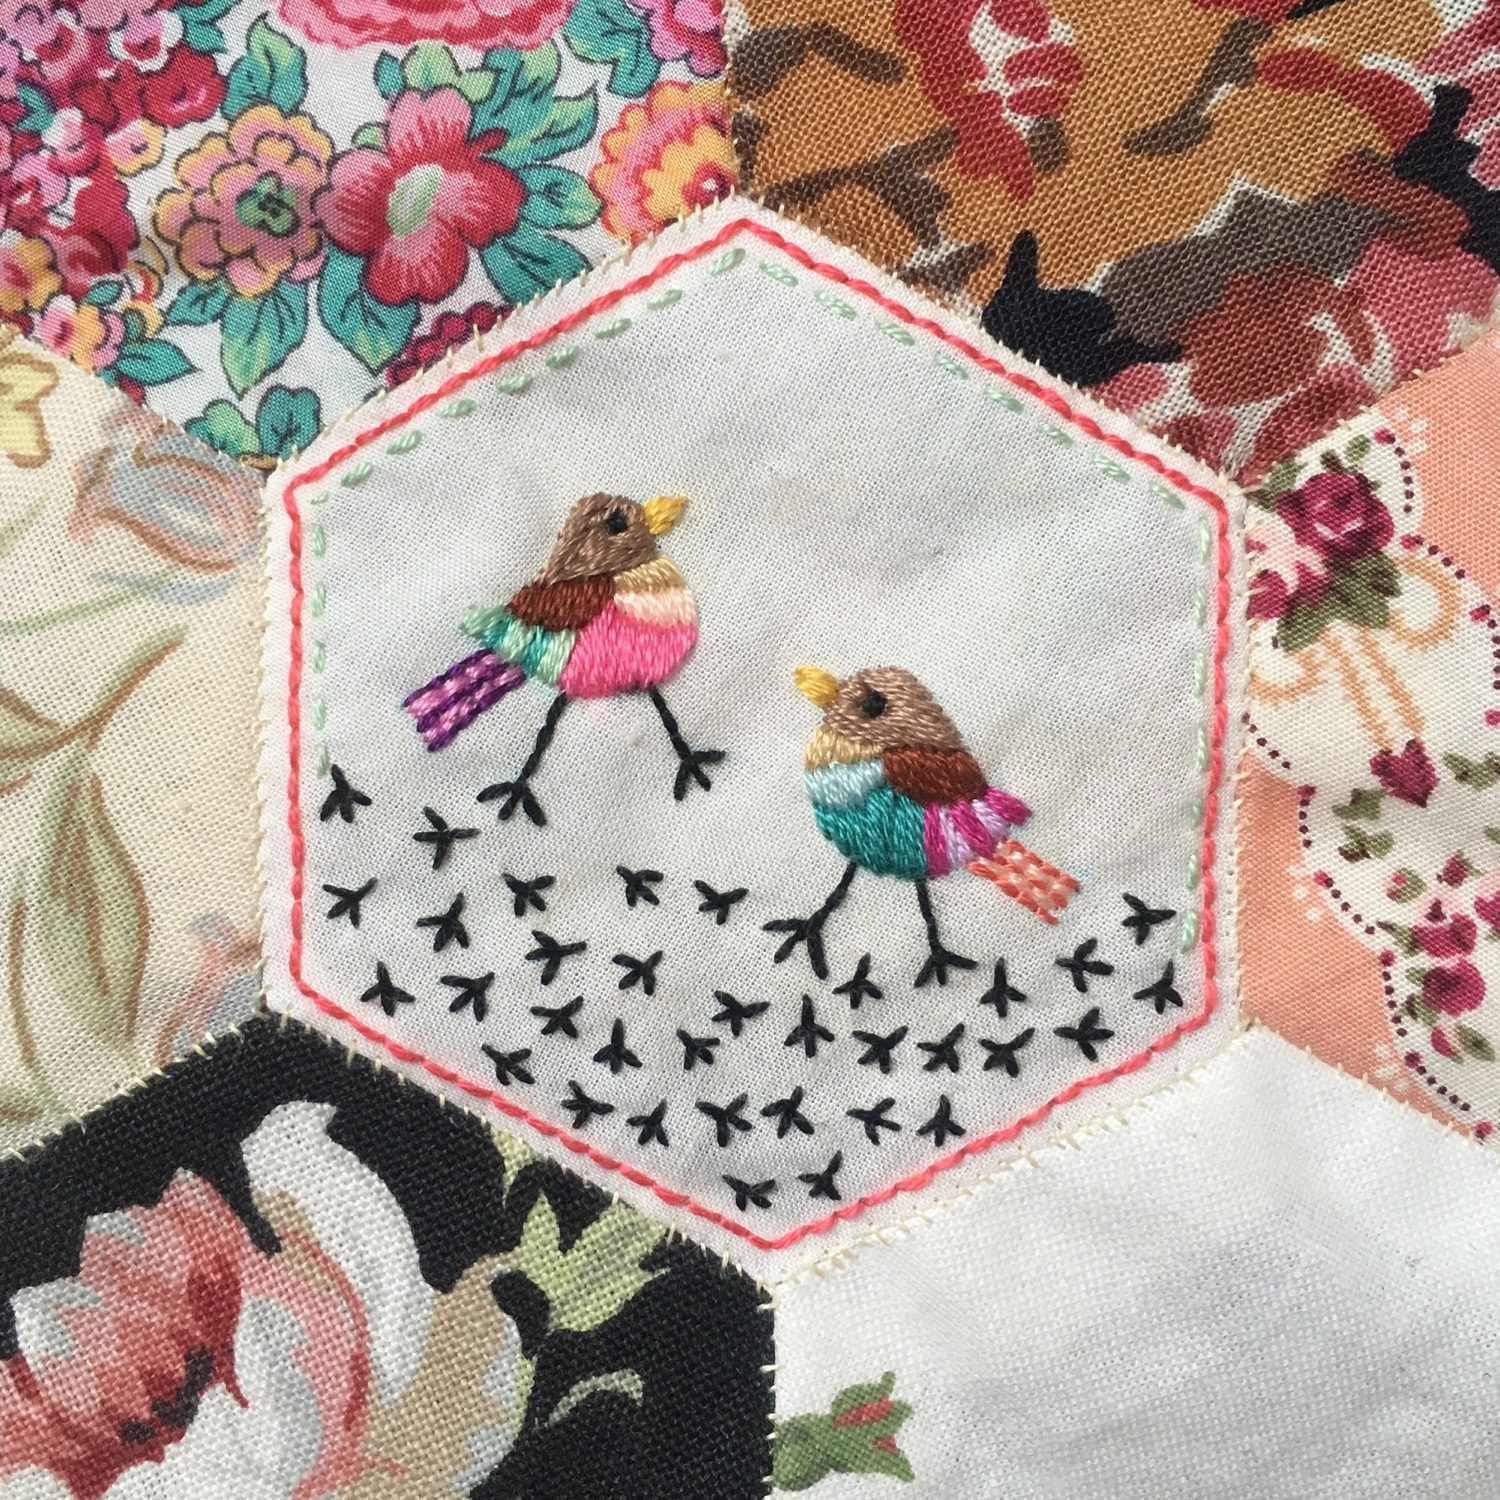 A natter with Sally Meyer from Sew Sal